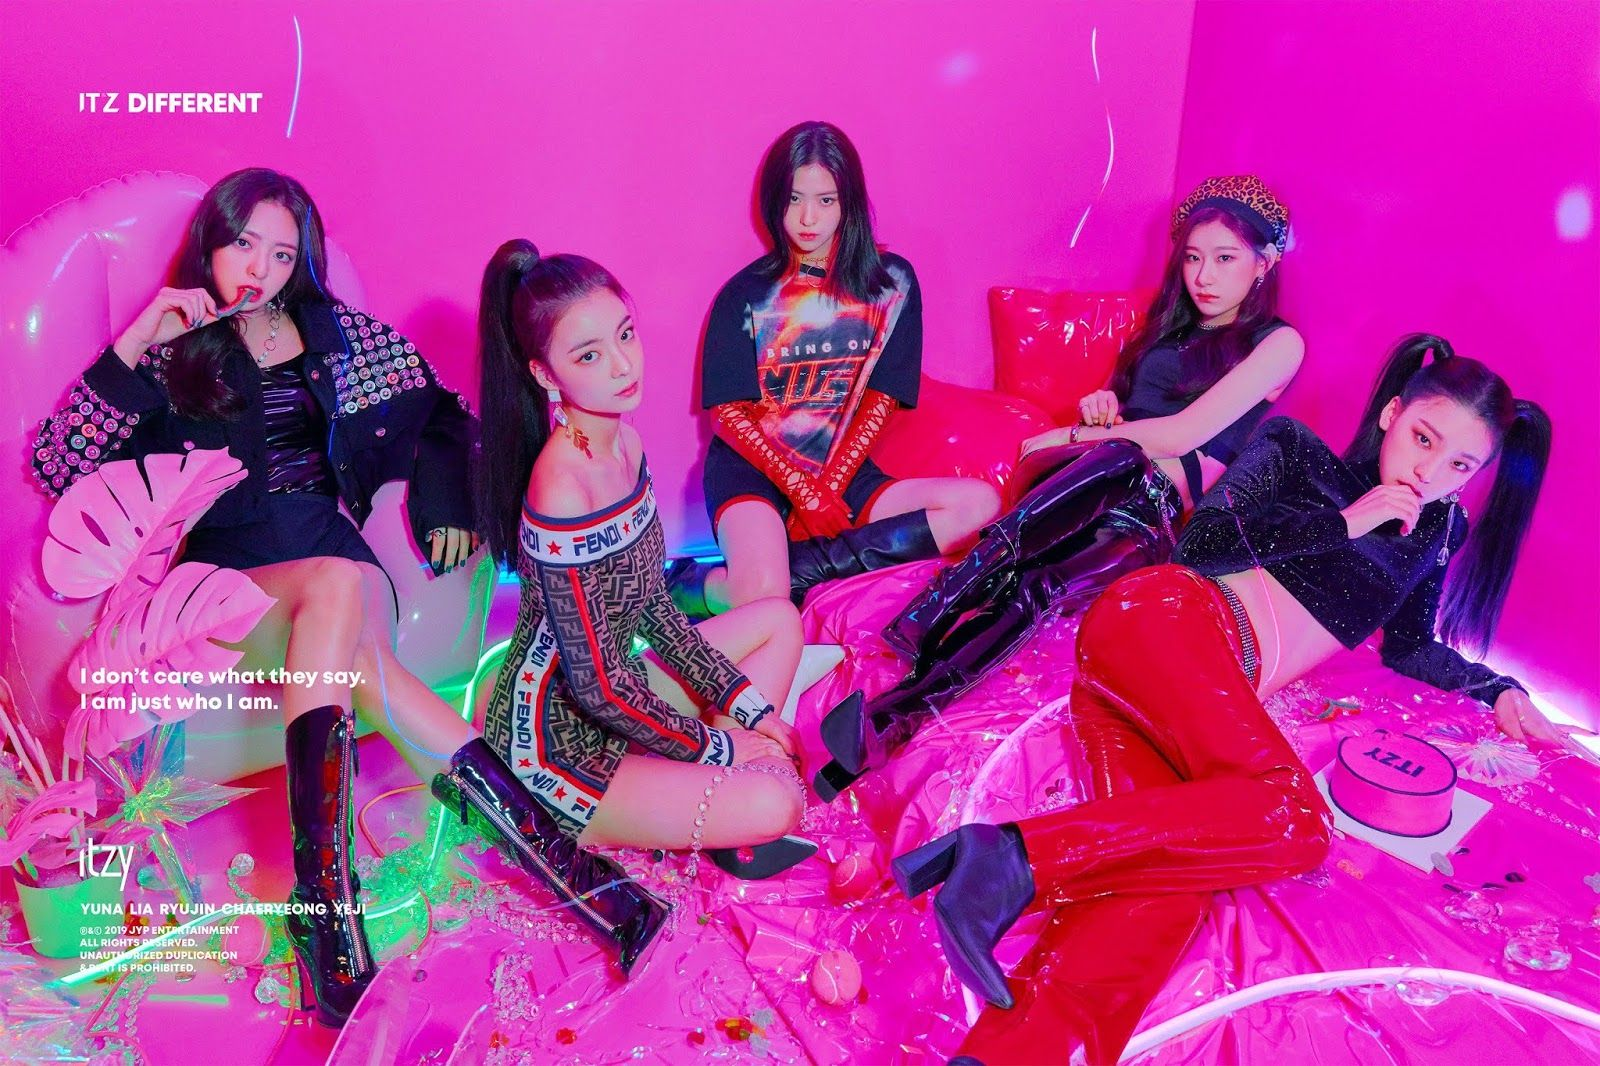 Photos Itzy It Z Different Image Teaser Itzy Album Covers Girl Group